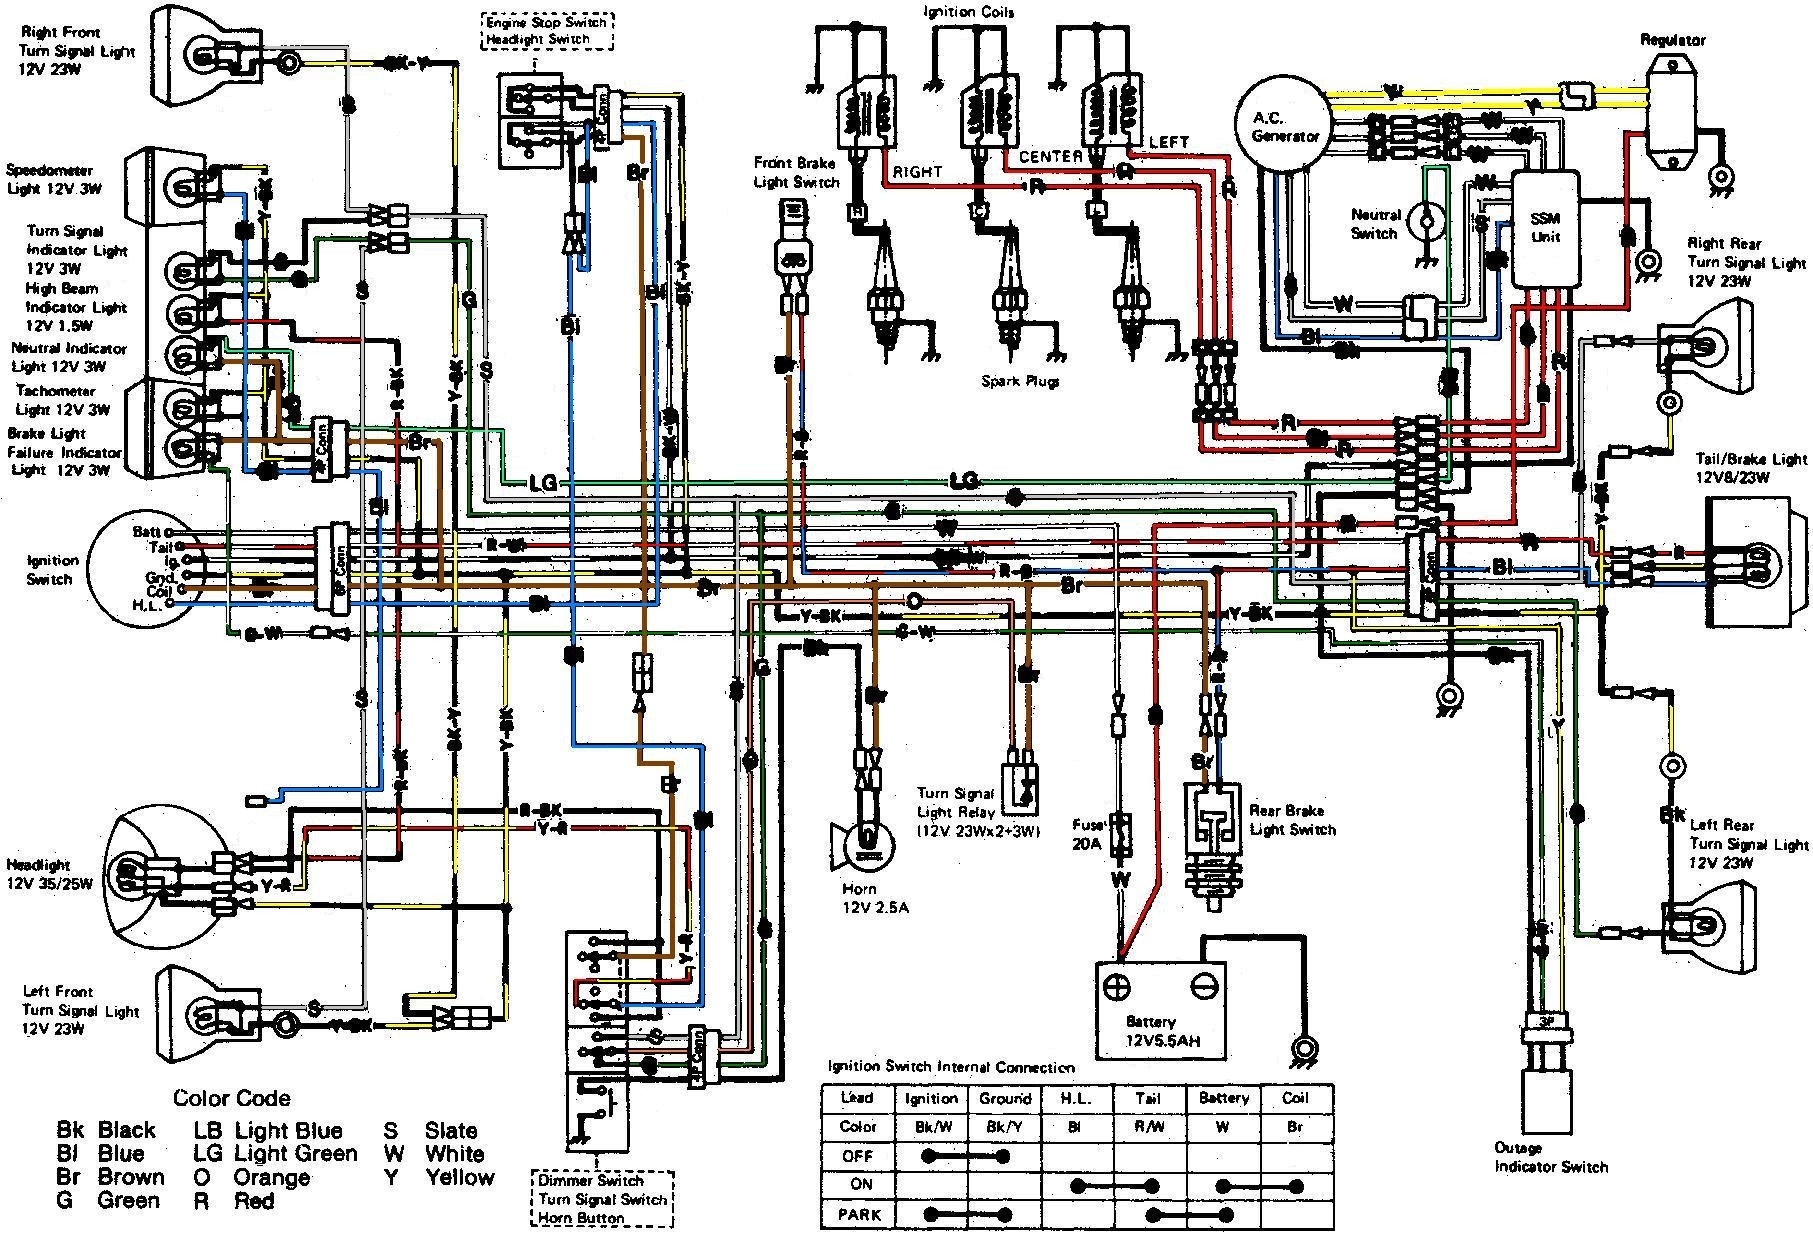 kawasaki bayou 220 wiring diagram Download-Wiring Diagram Kawasaki Bayou 220 2019 Wiring Diagram for Kawasaki Bayou 220 New Wiring Diagram 10 10-o